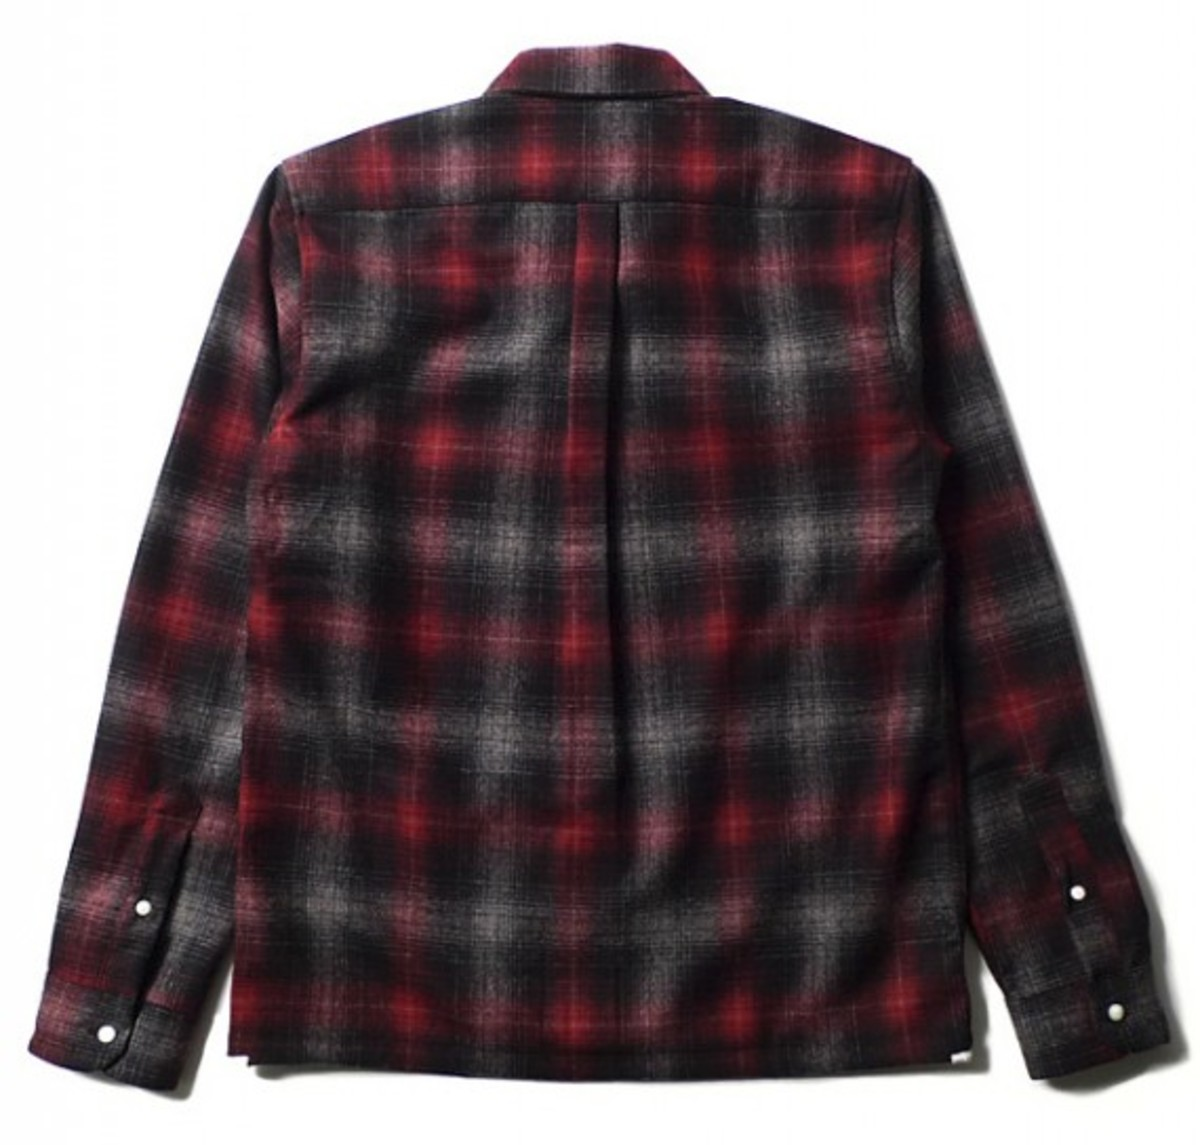 deluxe-pendleton-wool-check-shirt-02